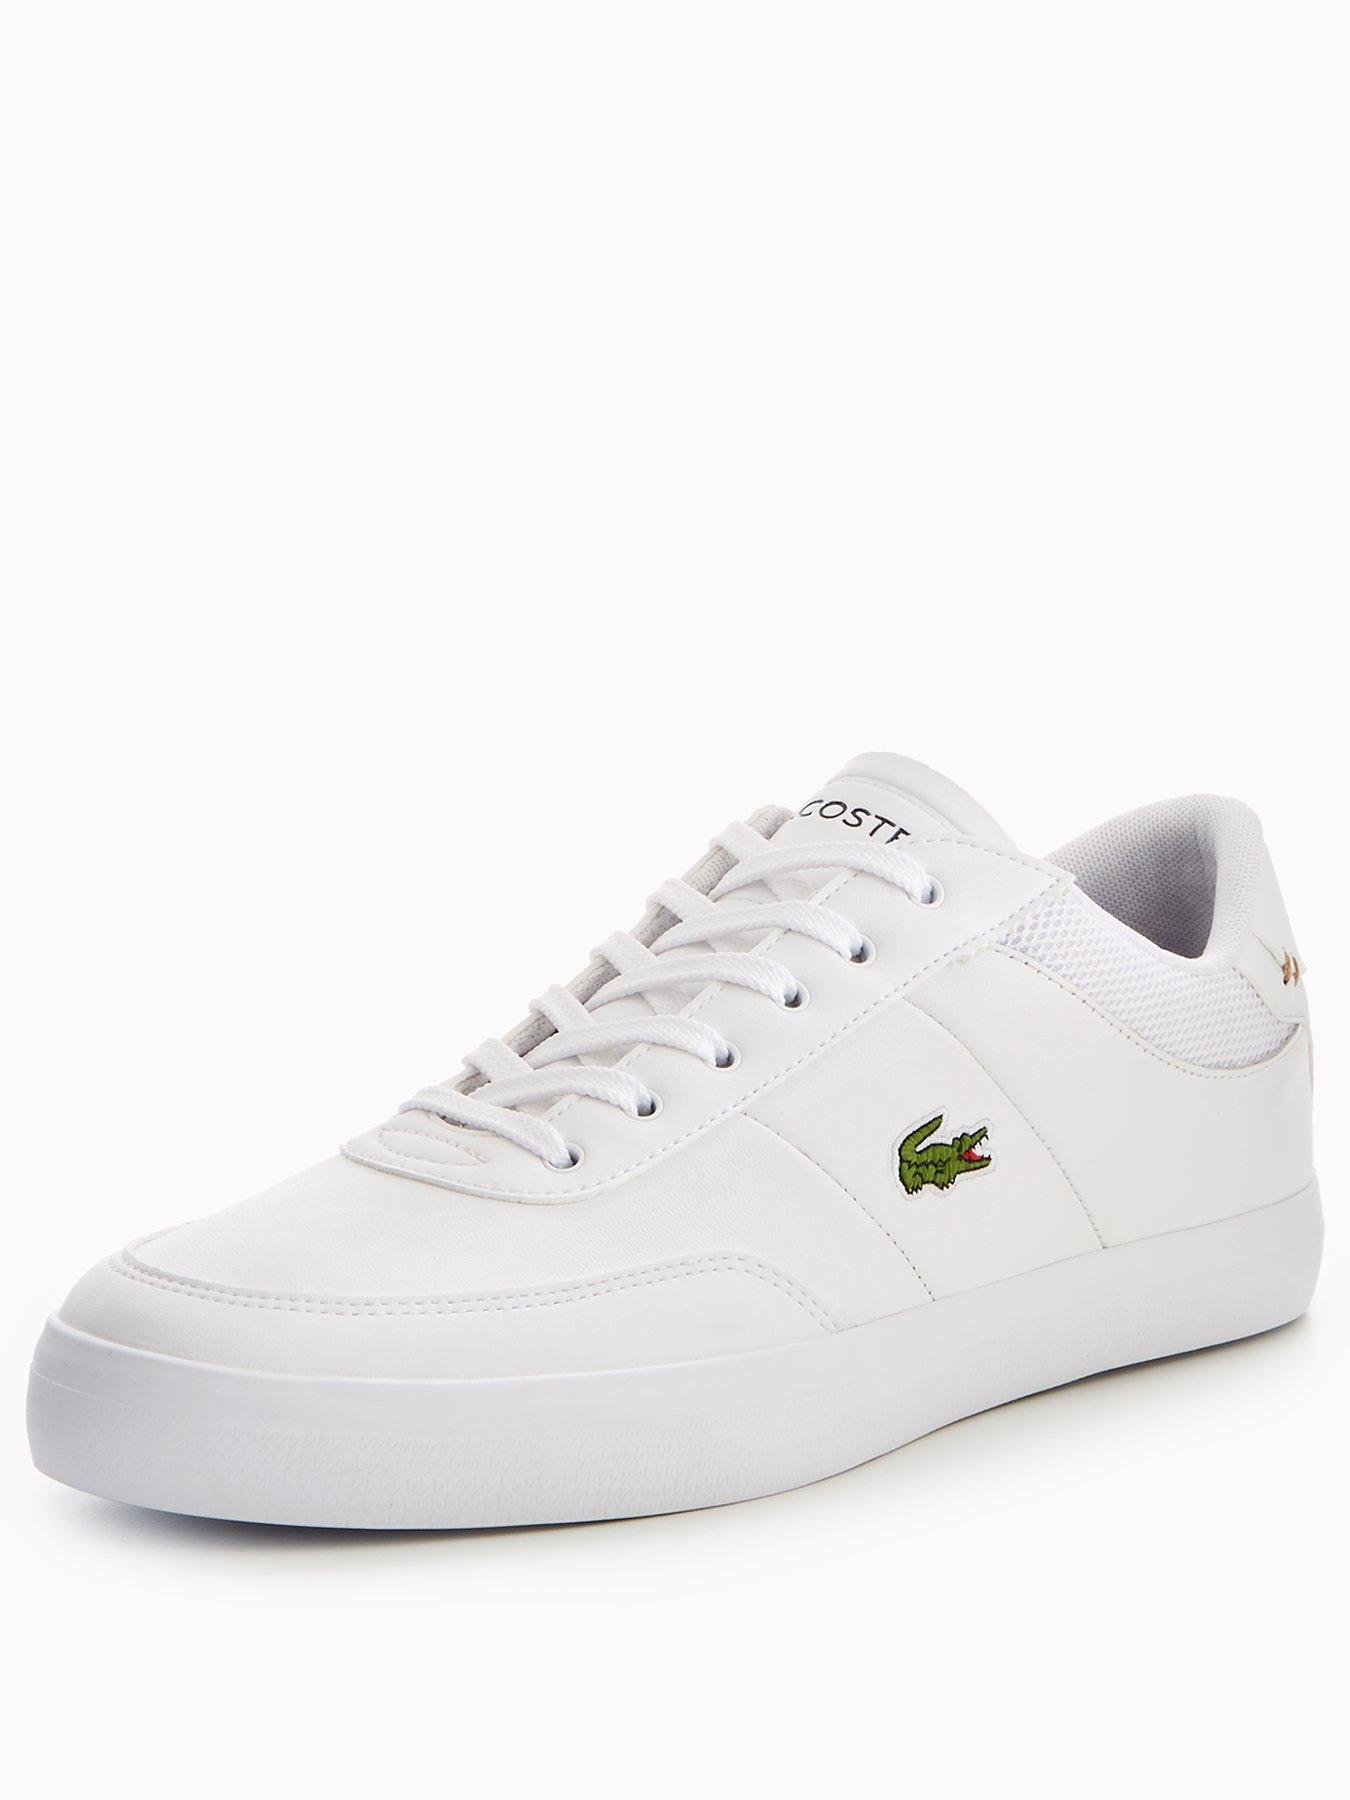 lacoste shoes very.co.uk